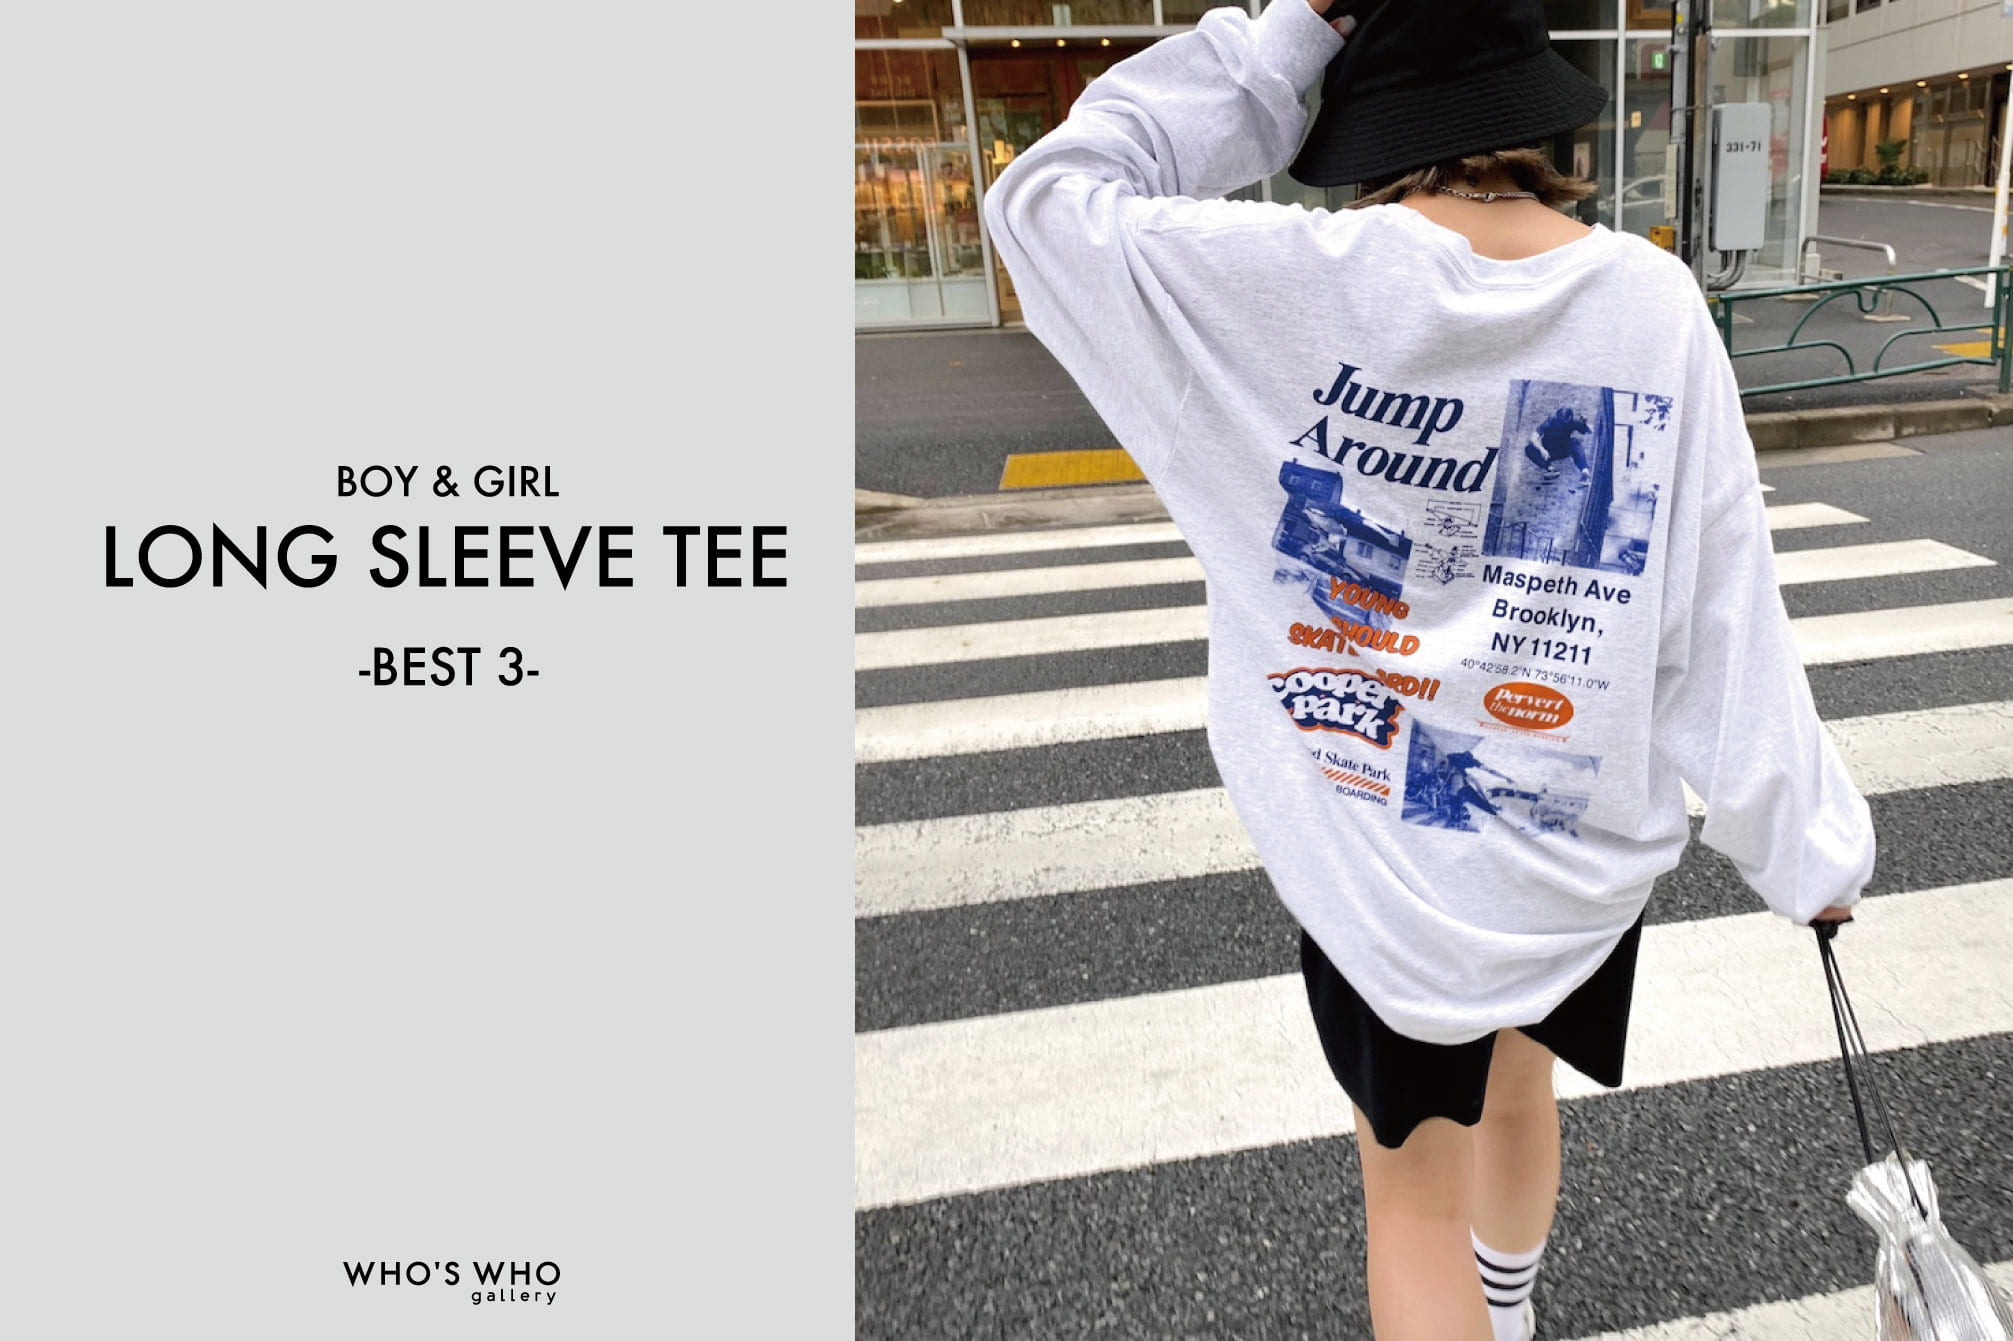 WHO'S WHO gallery 【LONG SLEEVE TEE -BEST3-】